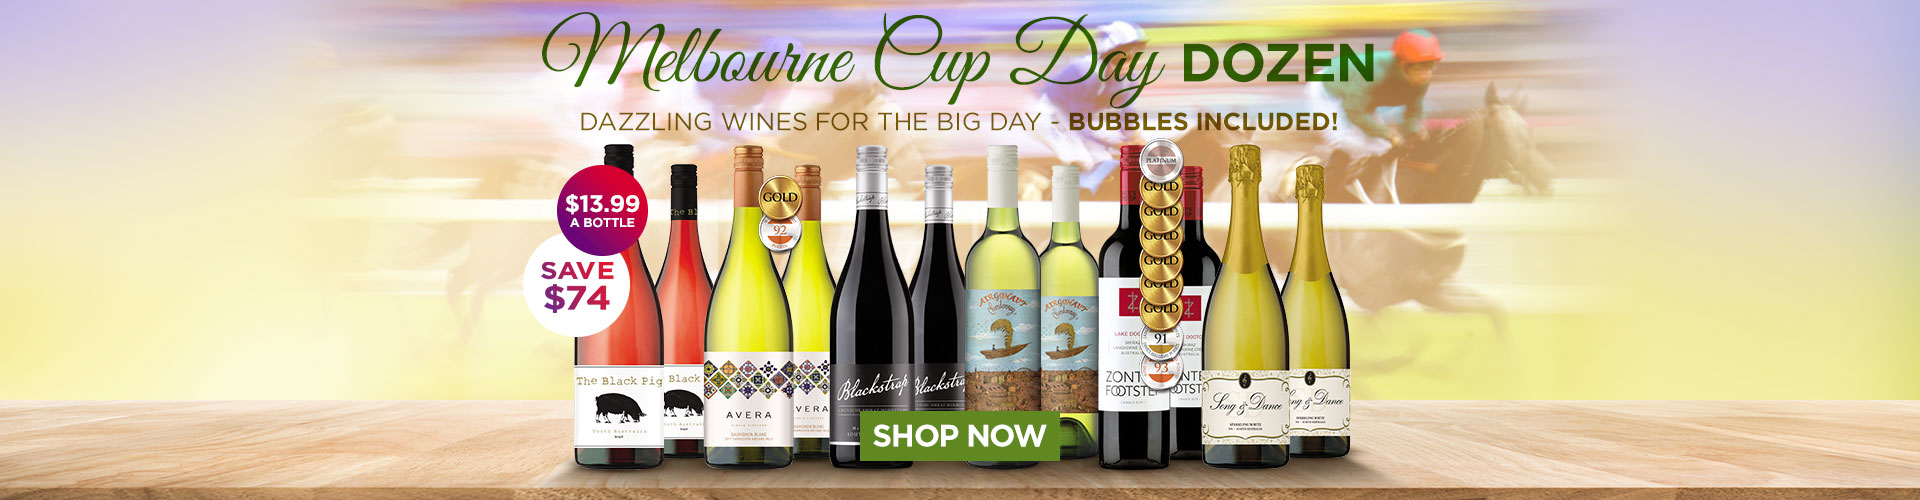 Melbourne Cup Day Dozen. Dazzling wines for the big day - bubbles included! $13.99 a bottle, SAVE $74 - SHOP NOW